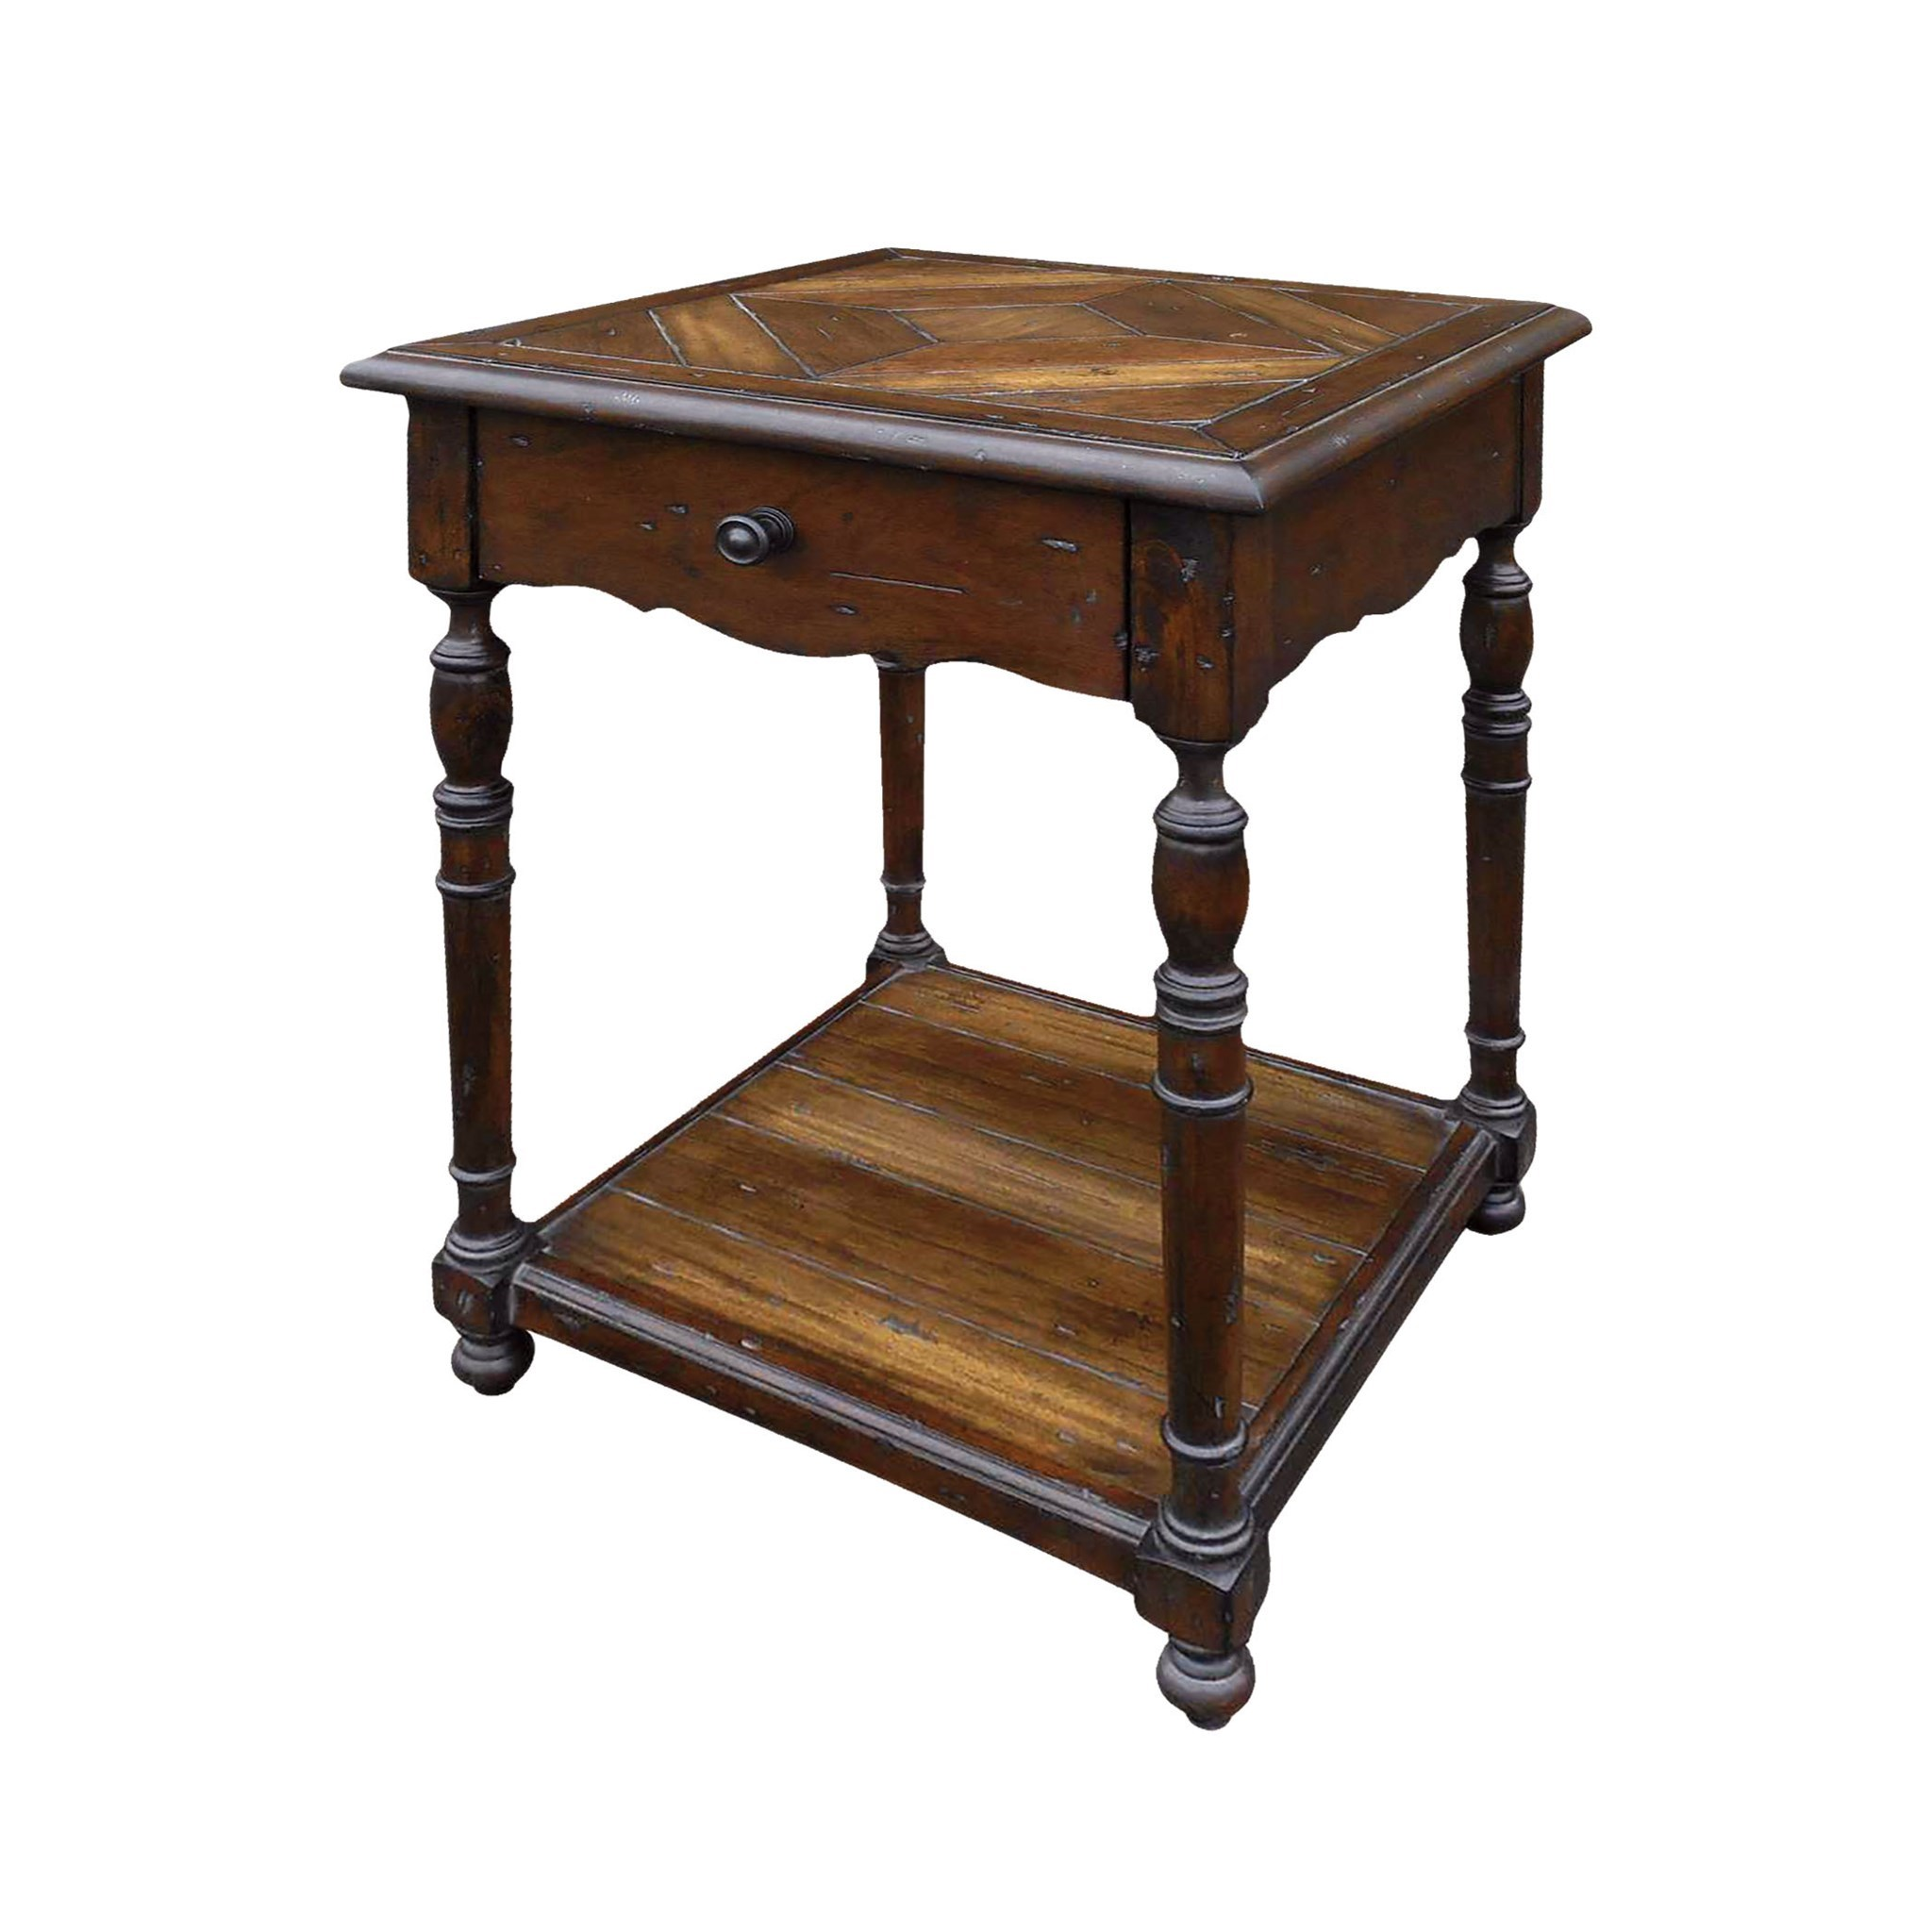 Home · FURNITURE; END TABLE. Sort By: